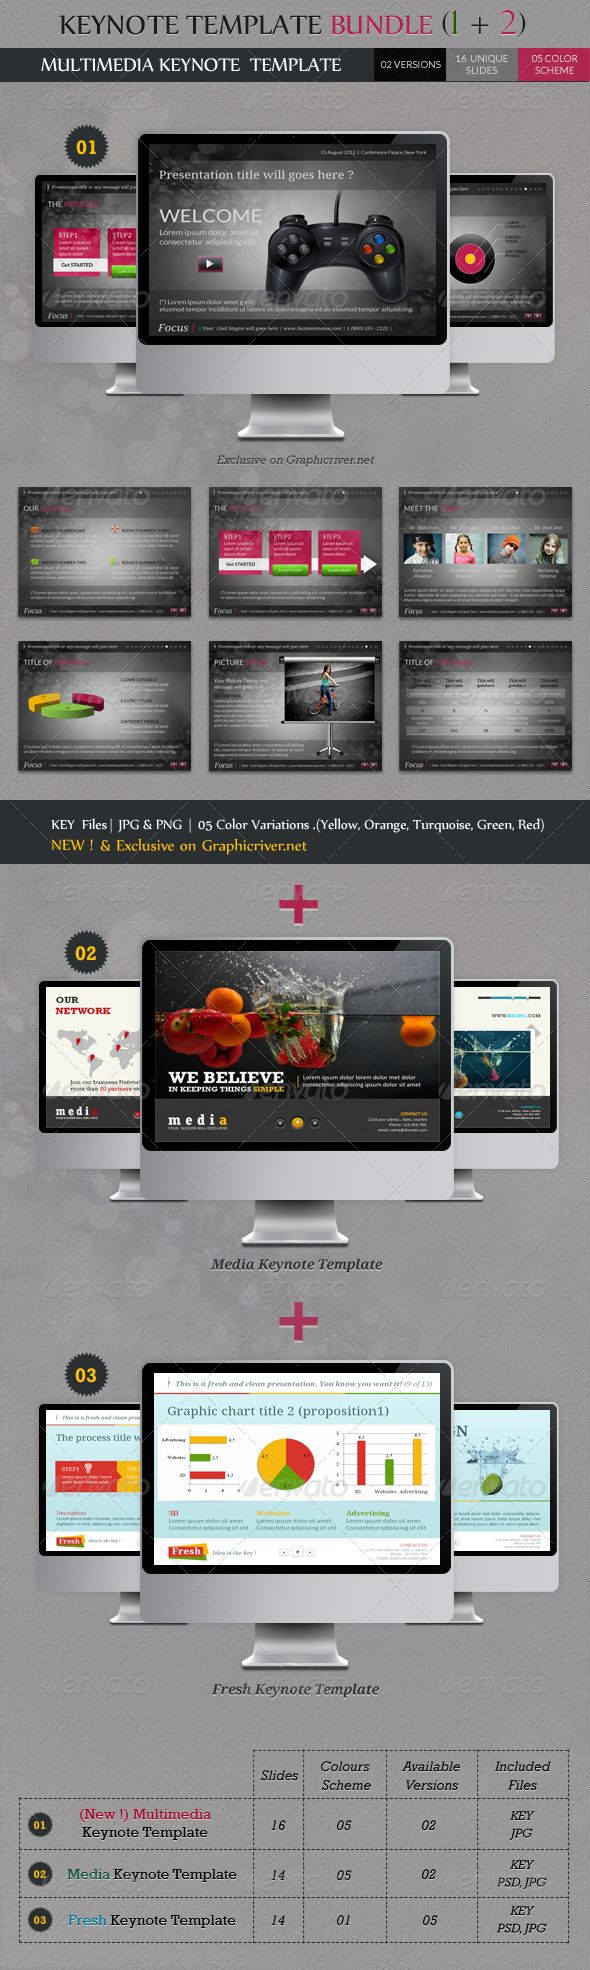 Best Keynote Templates Images On   Keynote Template